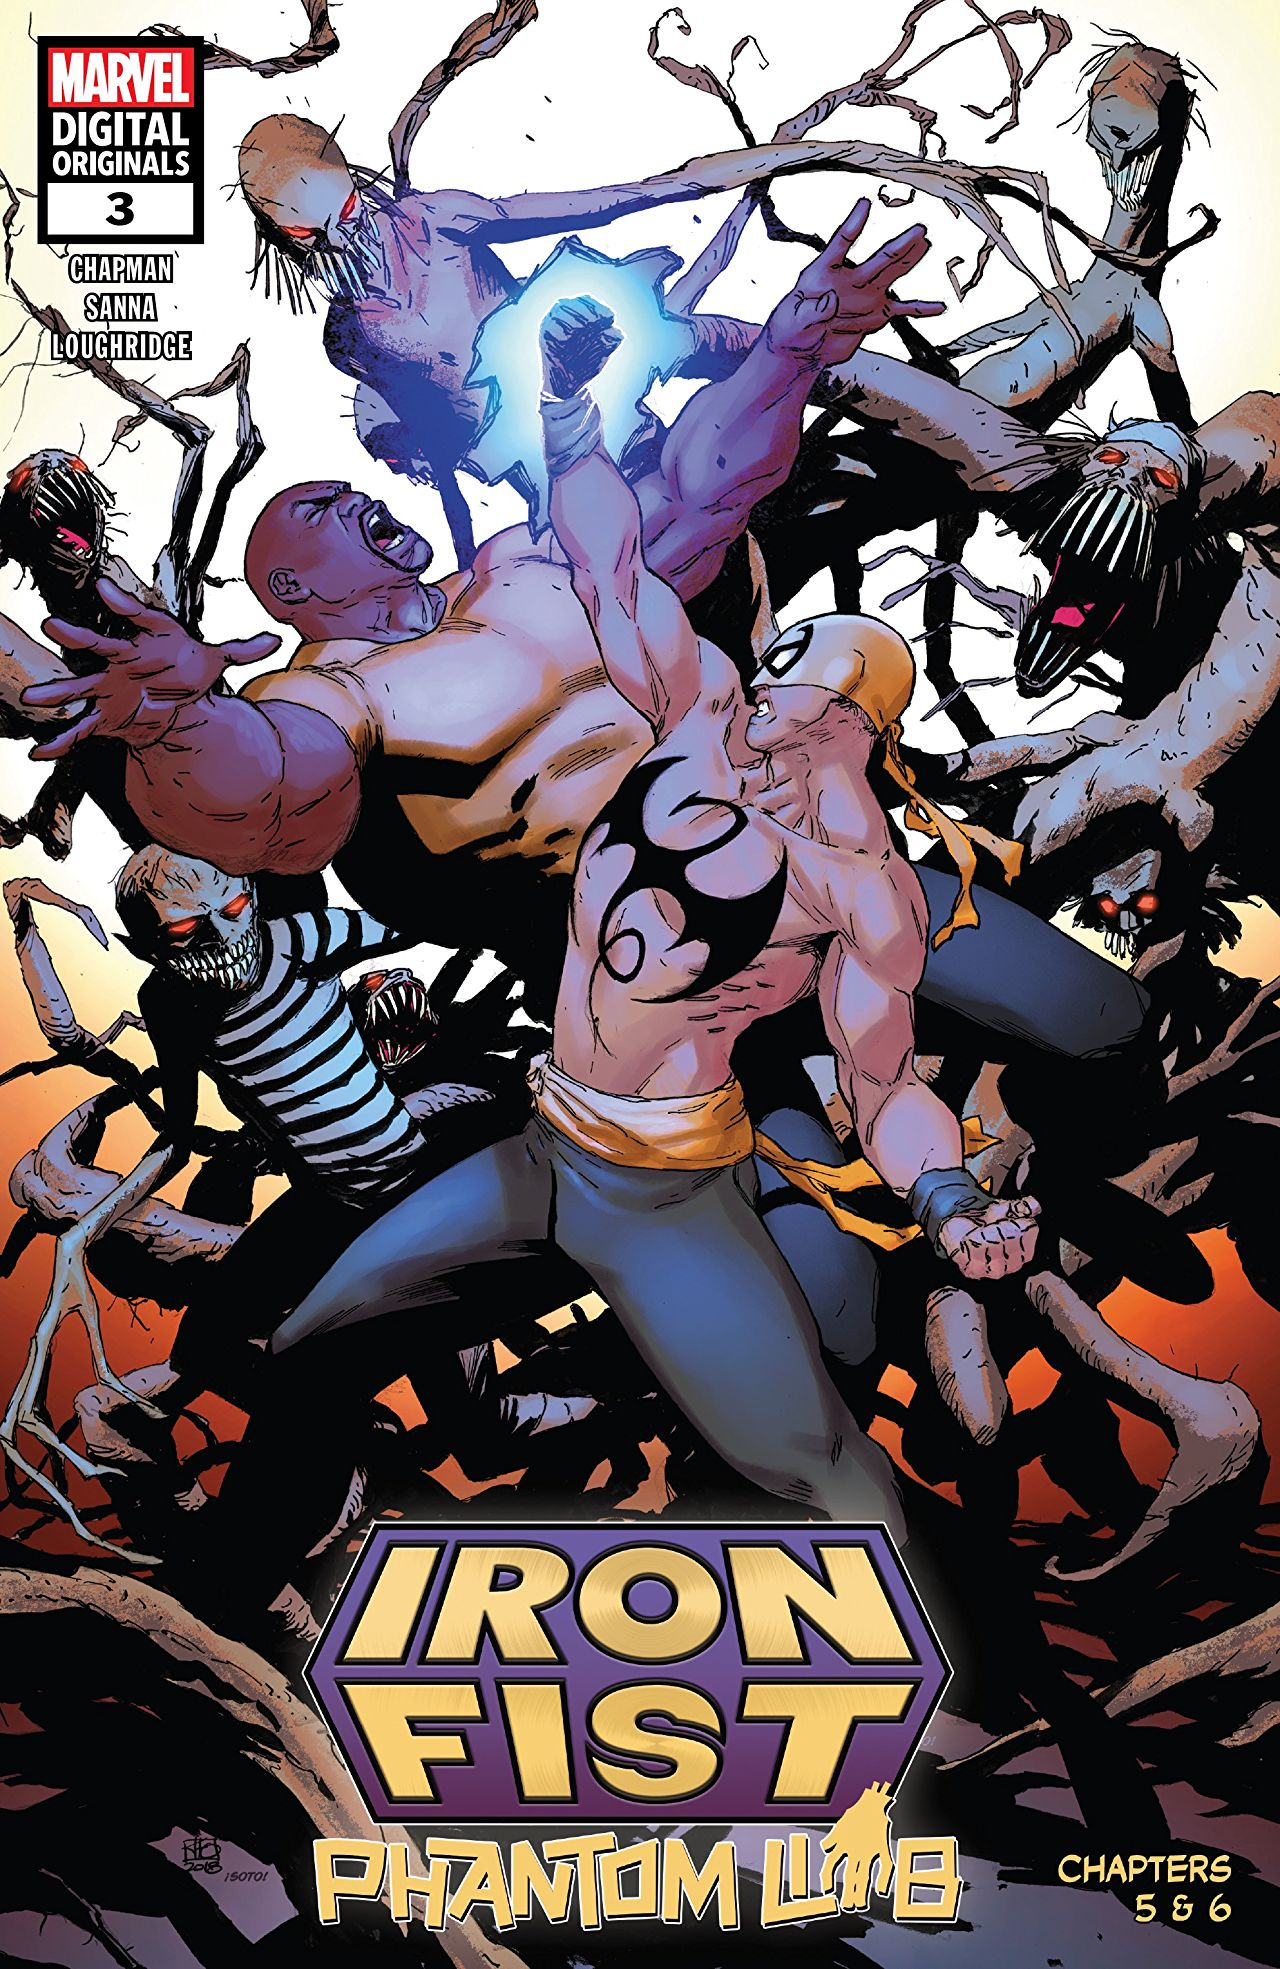 IRON FIST: PHANTOM LIMB #3